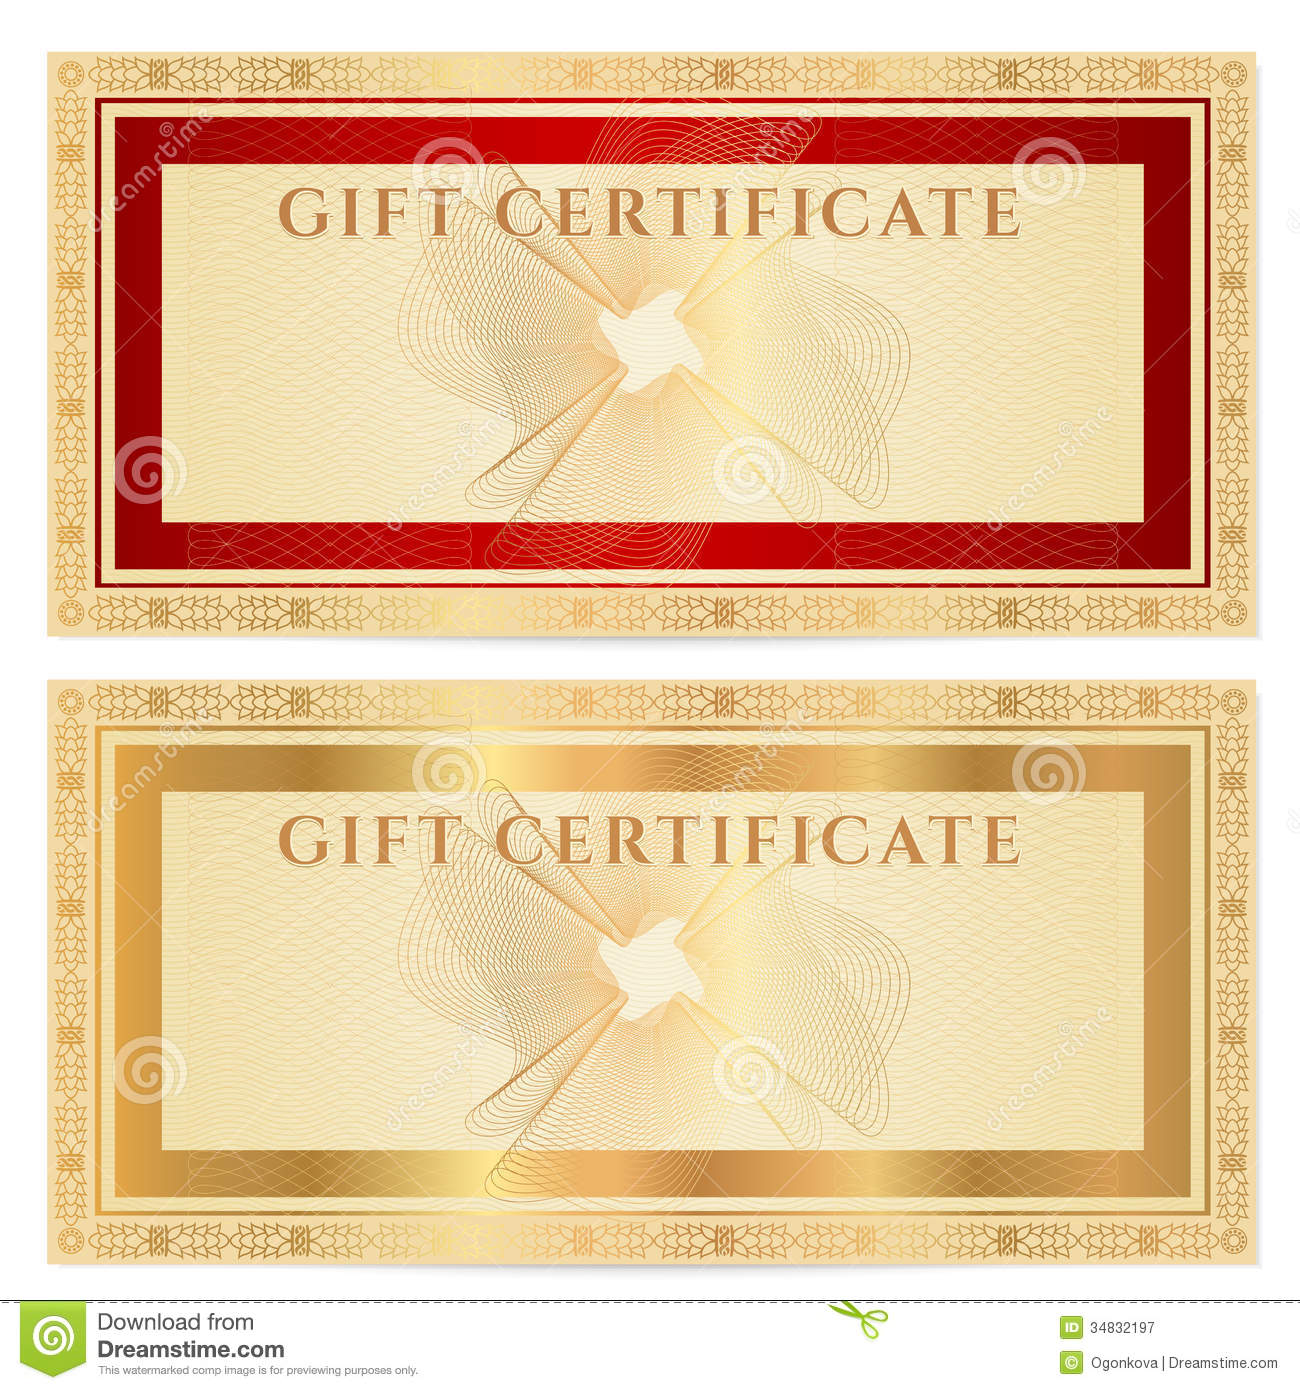 Gift Certificate (voucher) Template With Borders  Money Voucher Template